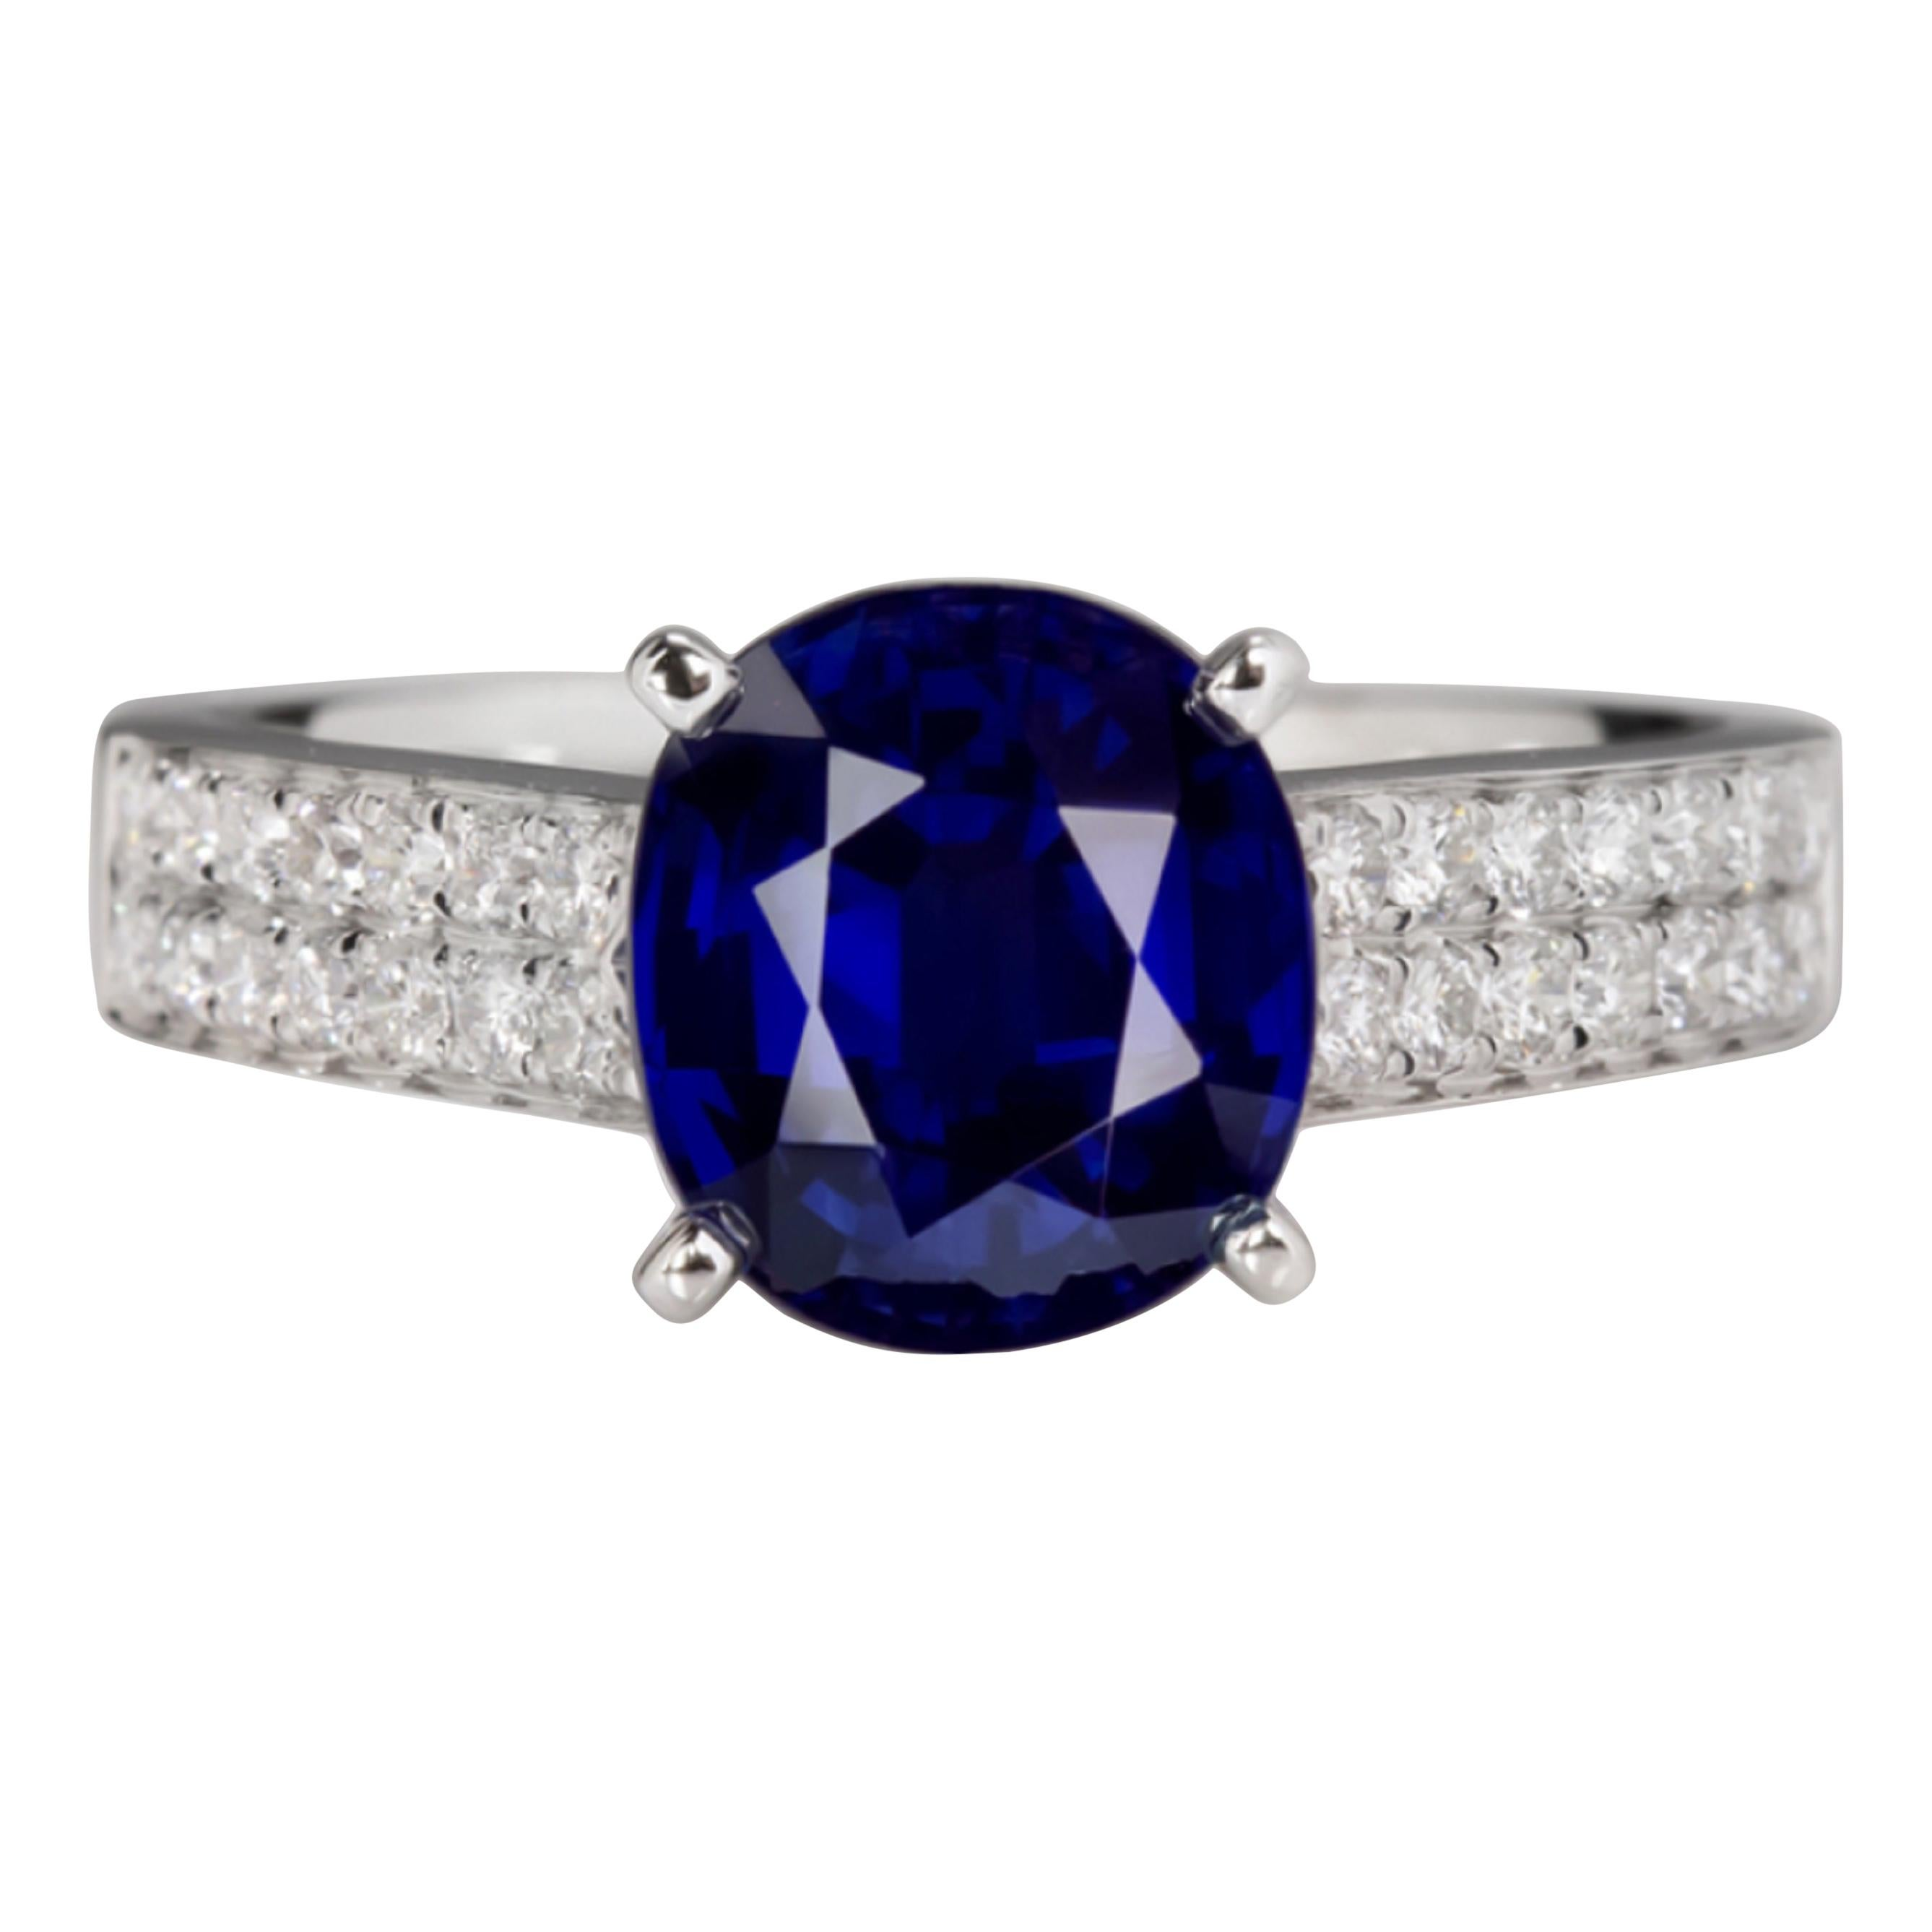 GIA Certified 3.50 Carat Blue Sapphire Diamond White Gold Ring